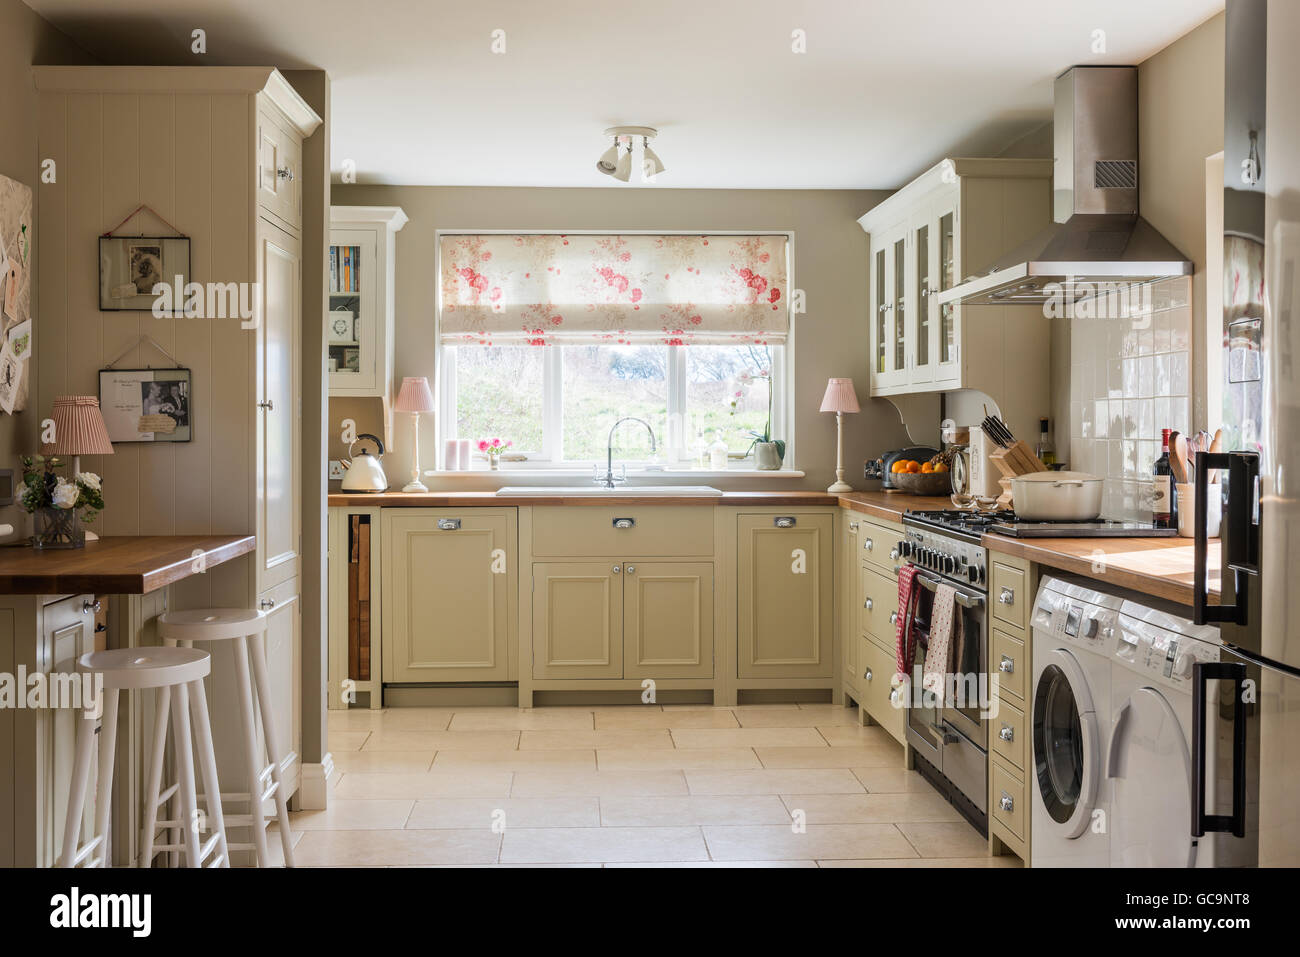 Country style kitchen with units from Neptune and tumbled limestone floor tiles. The Roman blind is made up in Kate - Stock Image